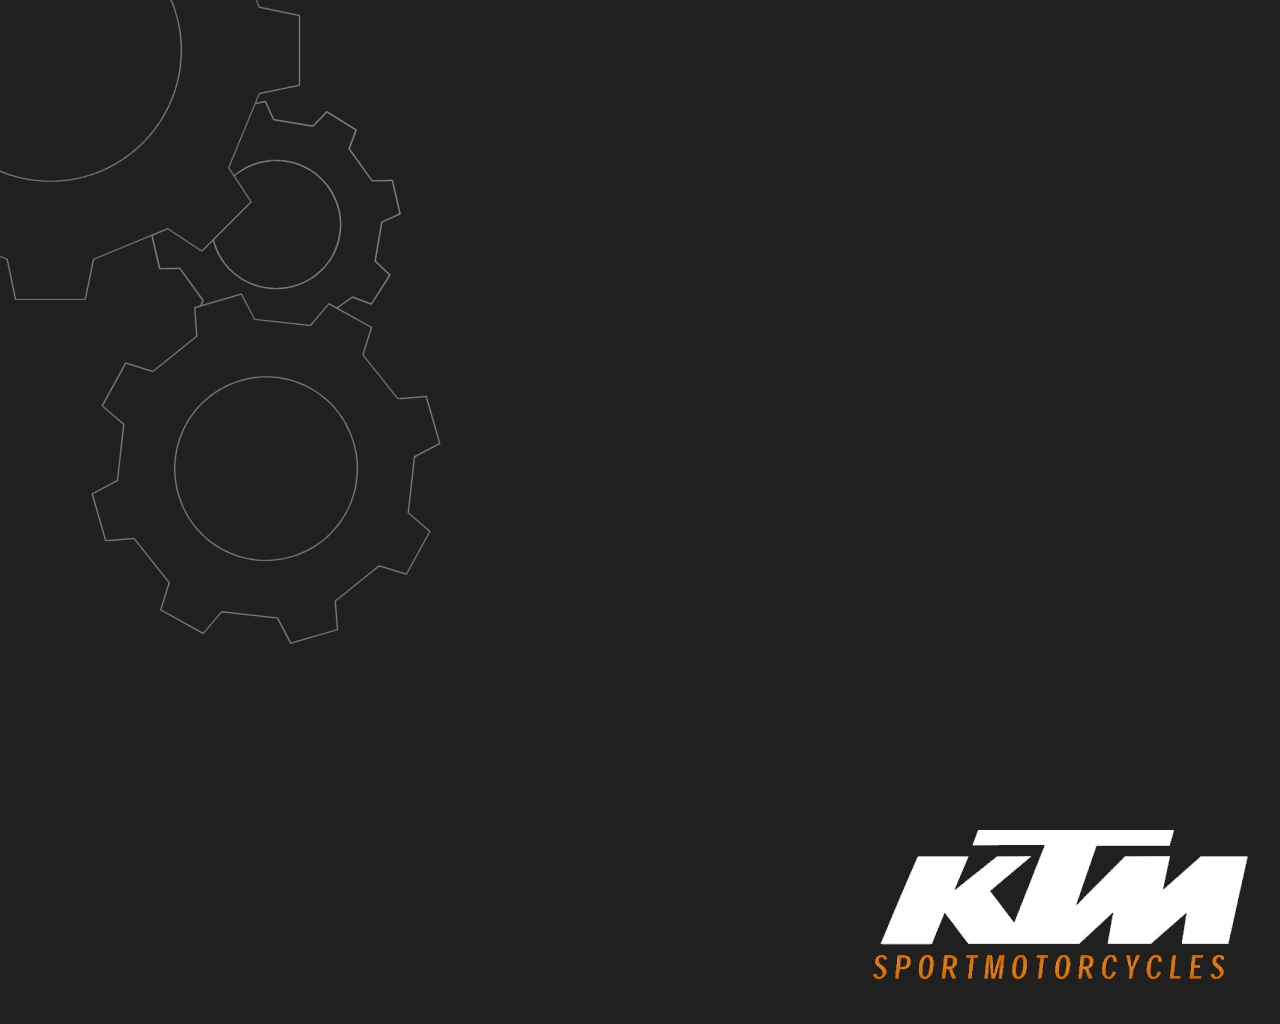 Ktm Logo Wallpaper 1280x1024